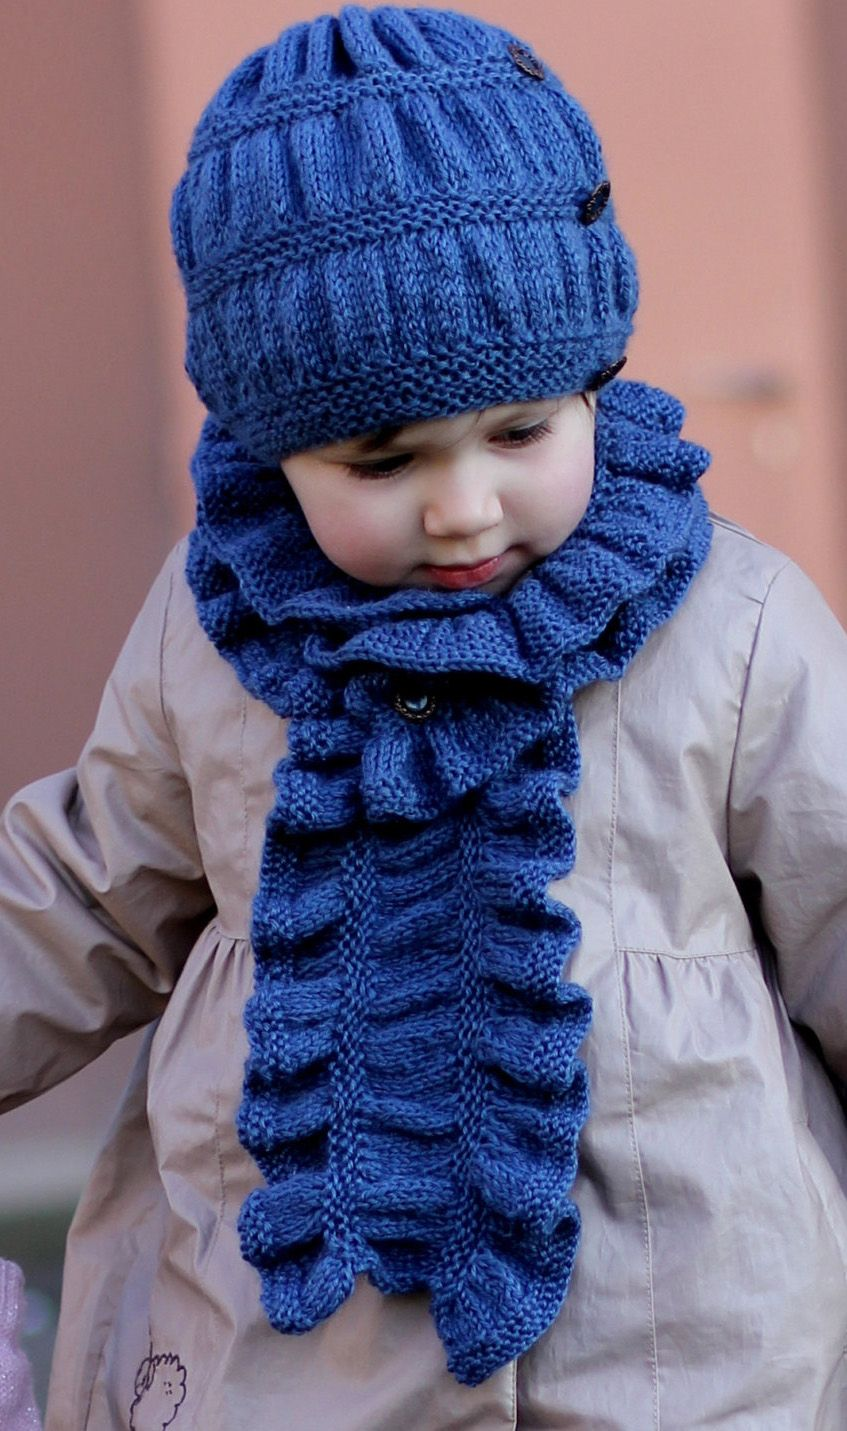 Knitting pattern for easy frill hat and scarf set ad adult knitting pattern for easy frill hat and scarf set adult child and toddler sizes easy ruffled hat and scarf in garter and stockinette bankloansurffo Gallery